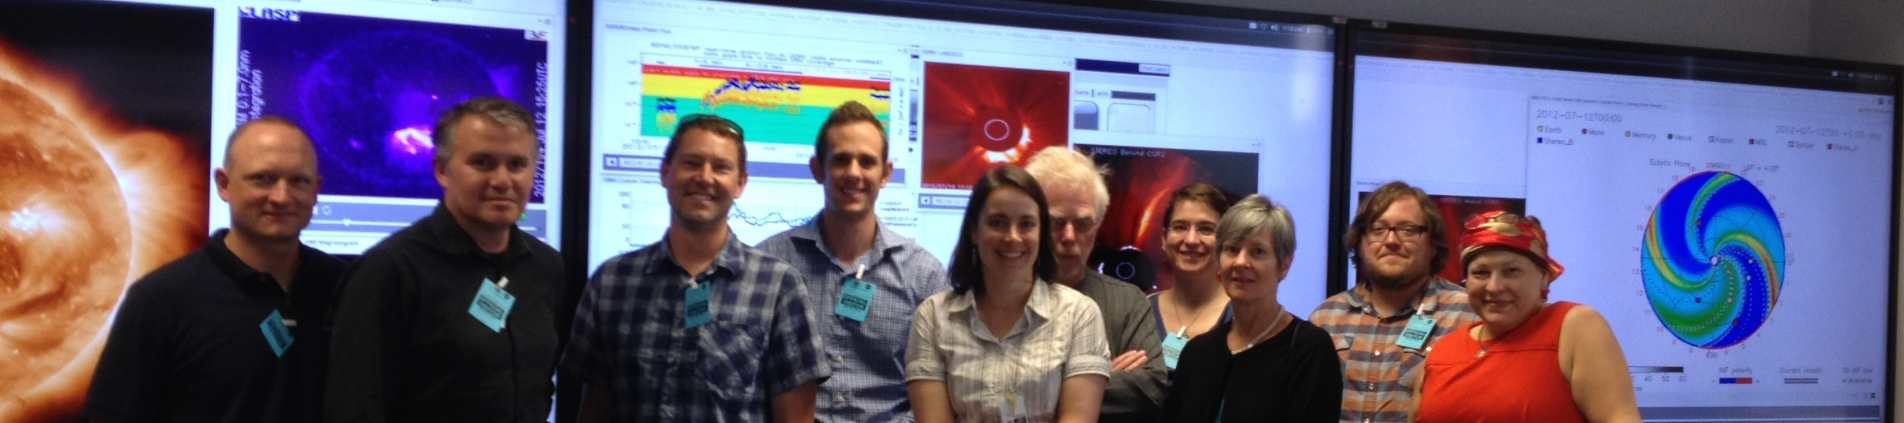 Ten people stand in front of screens that show space weather data